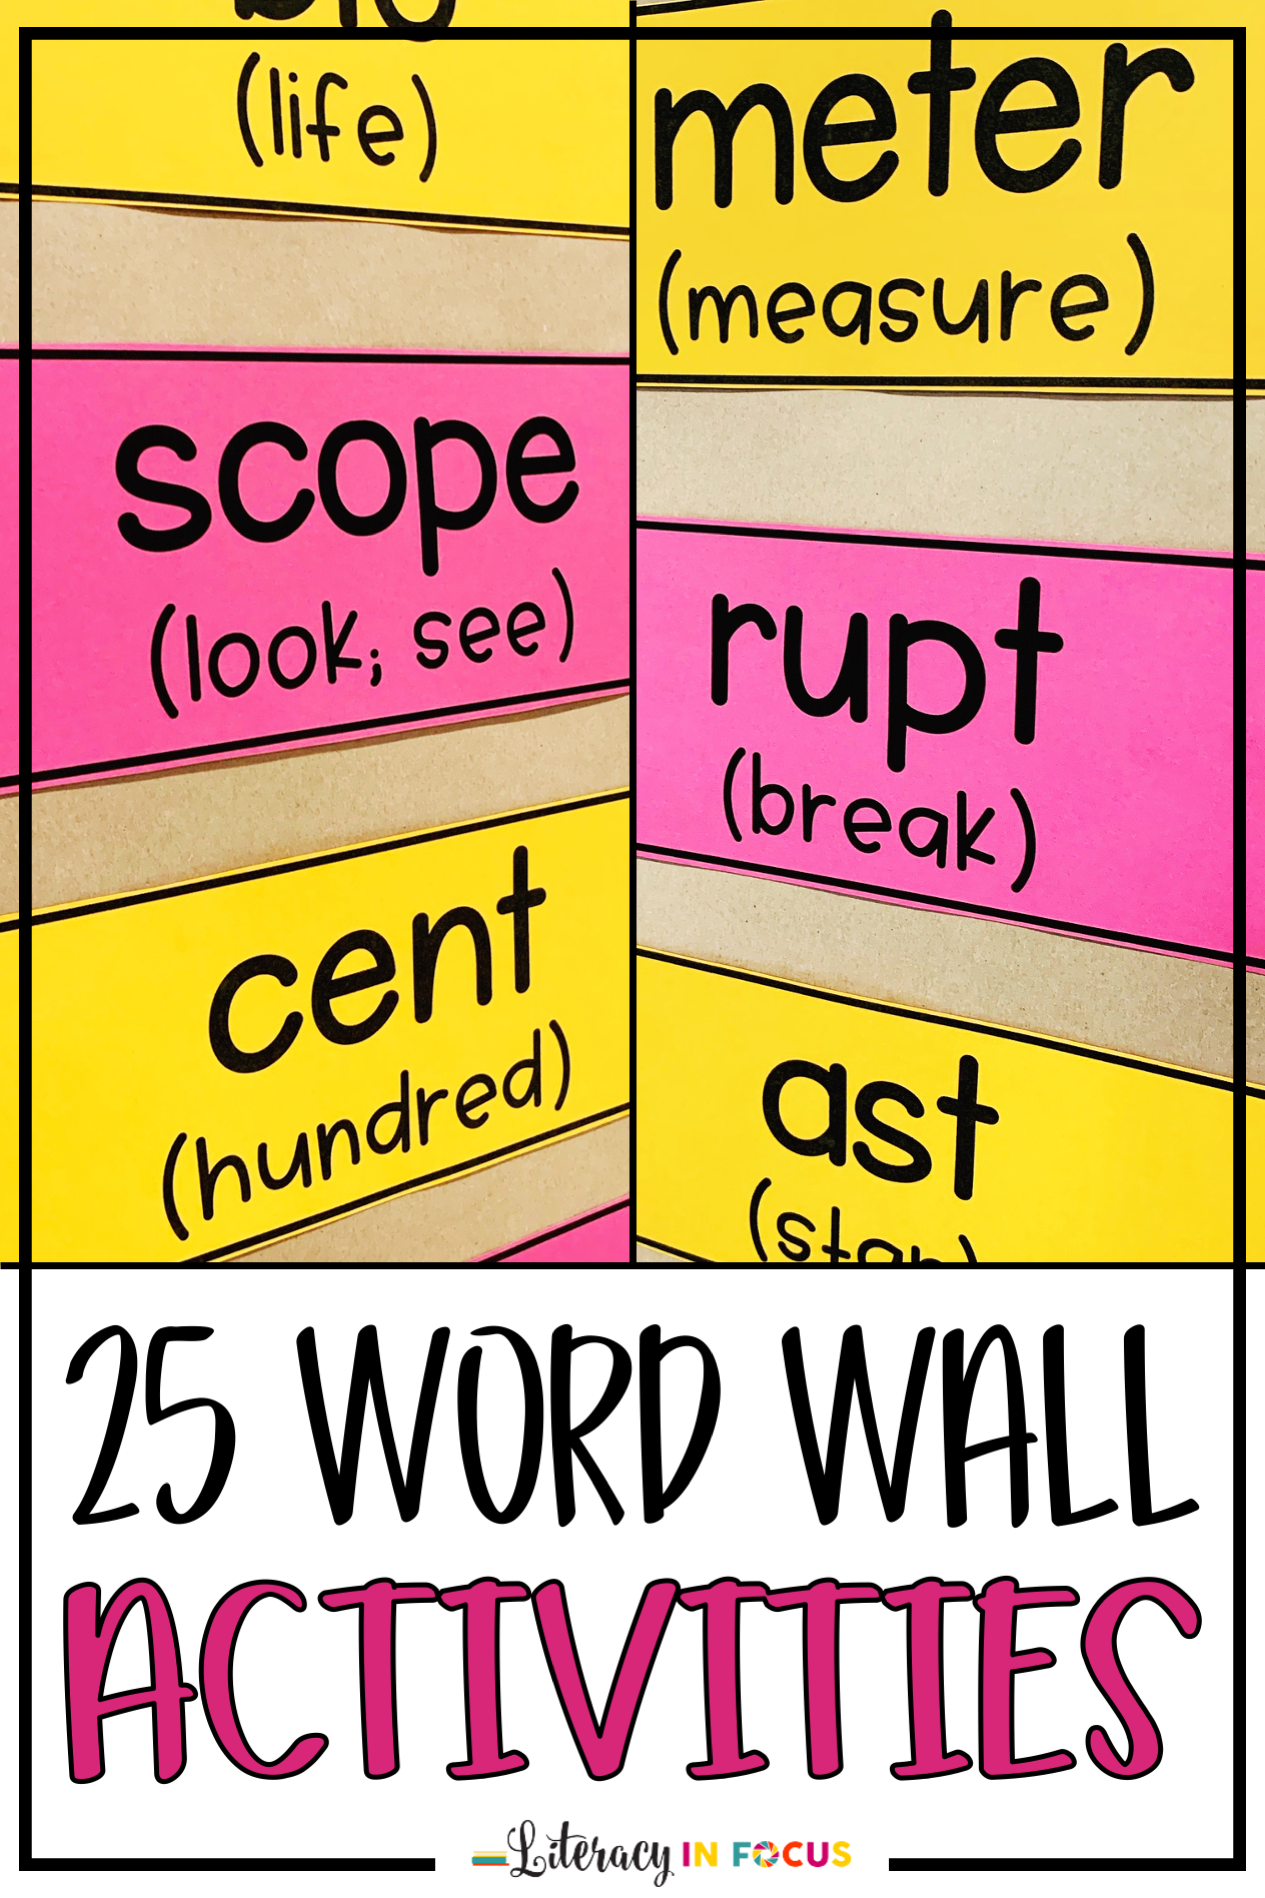 25 Word Wall Activities